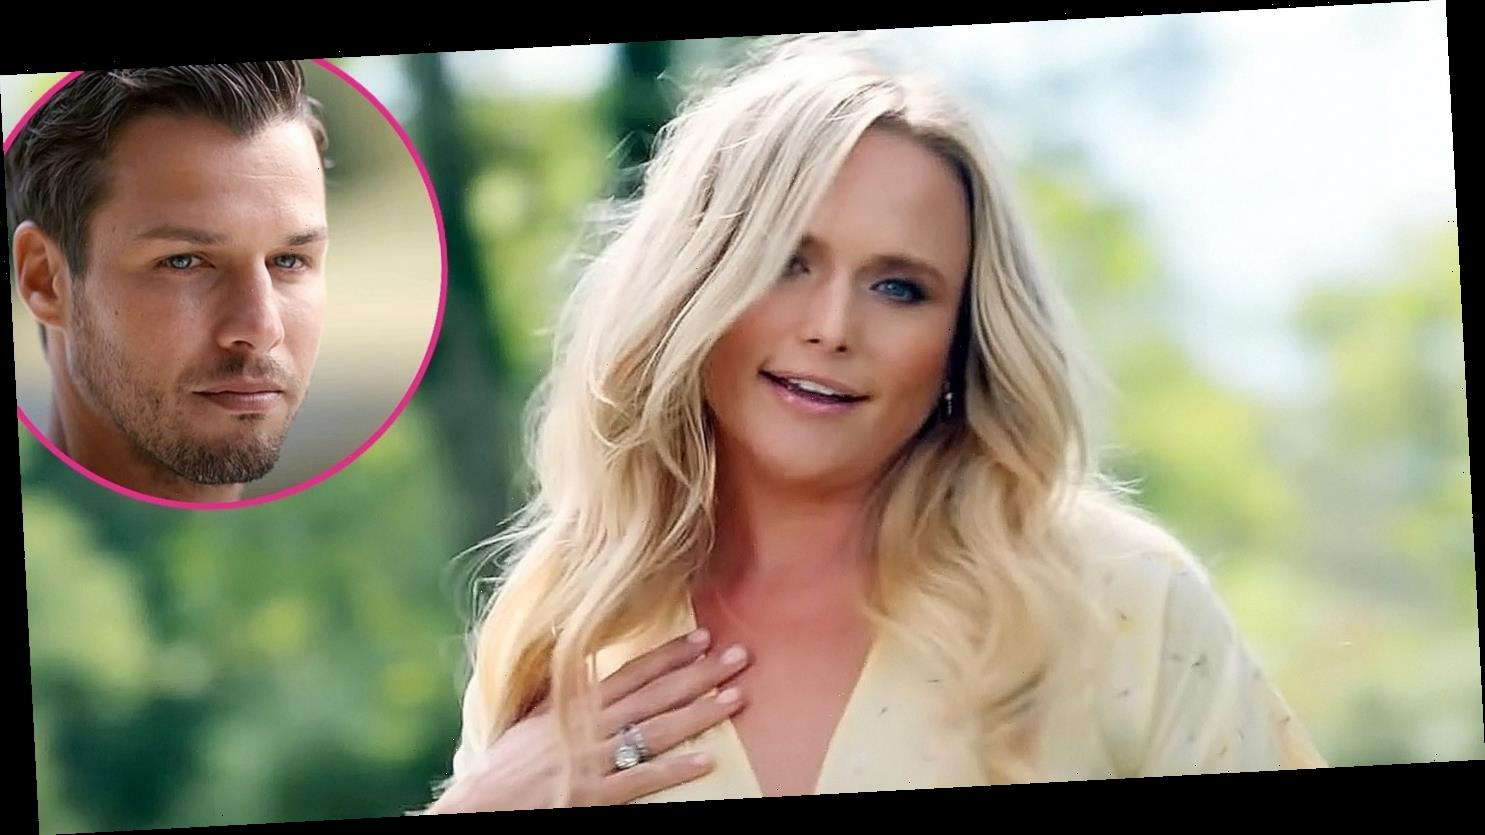 Miranda Lambert Had Husband Brendan in New Video Because 'He's Really Pretty'